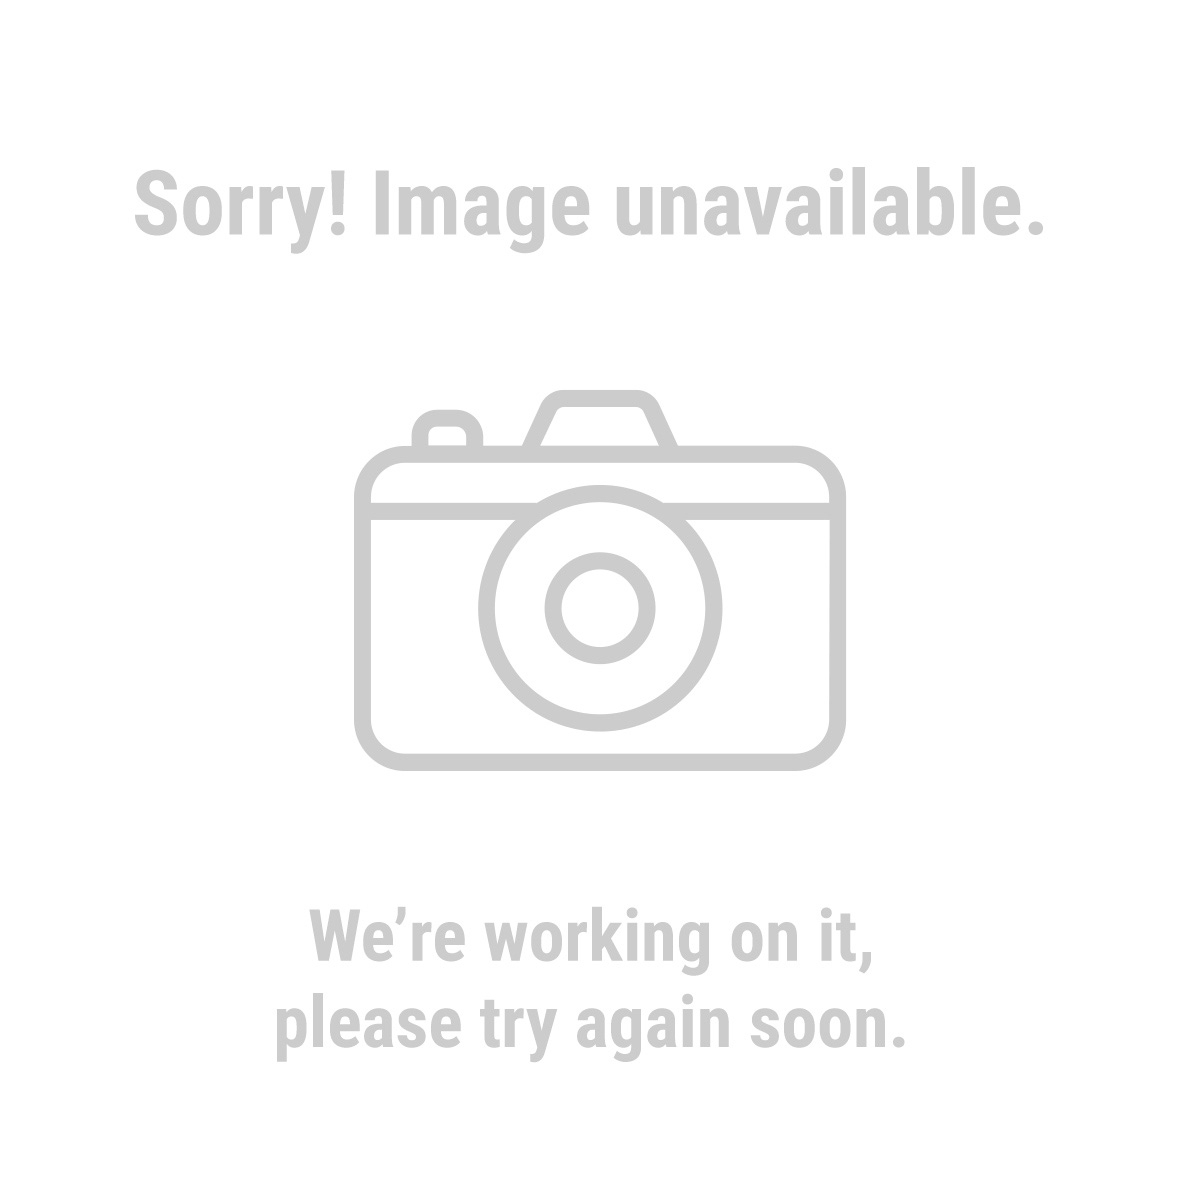 Warrior 41312 4 Piece Large Diameter Spade Bit Set